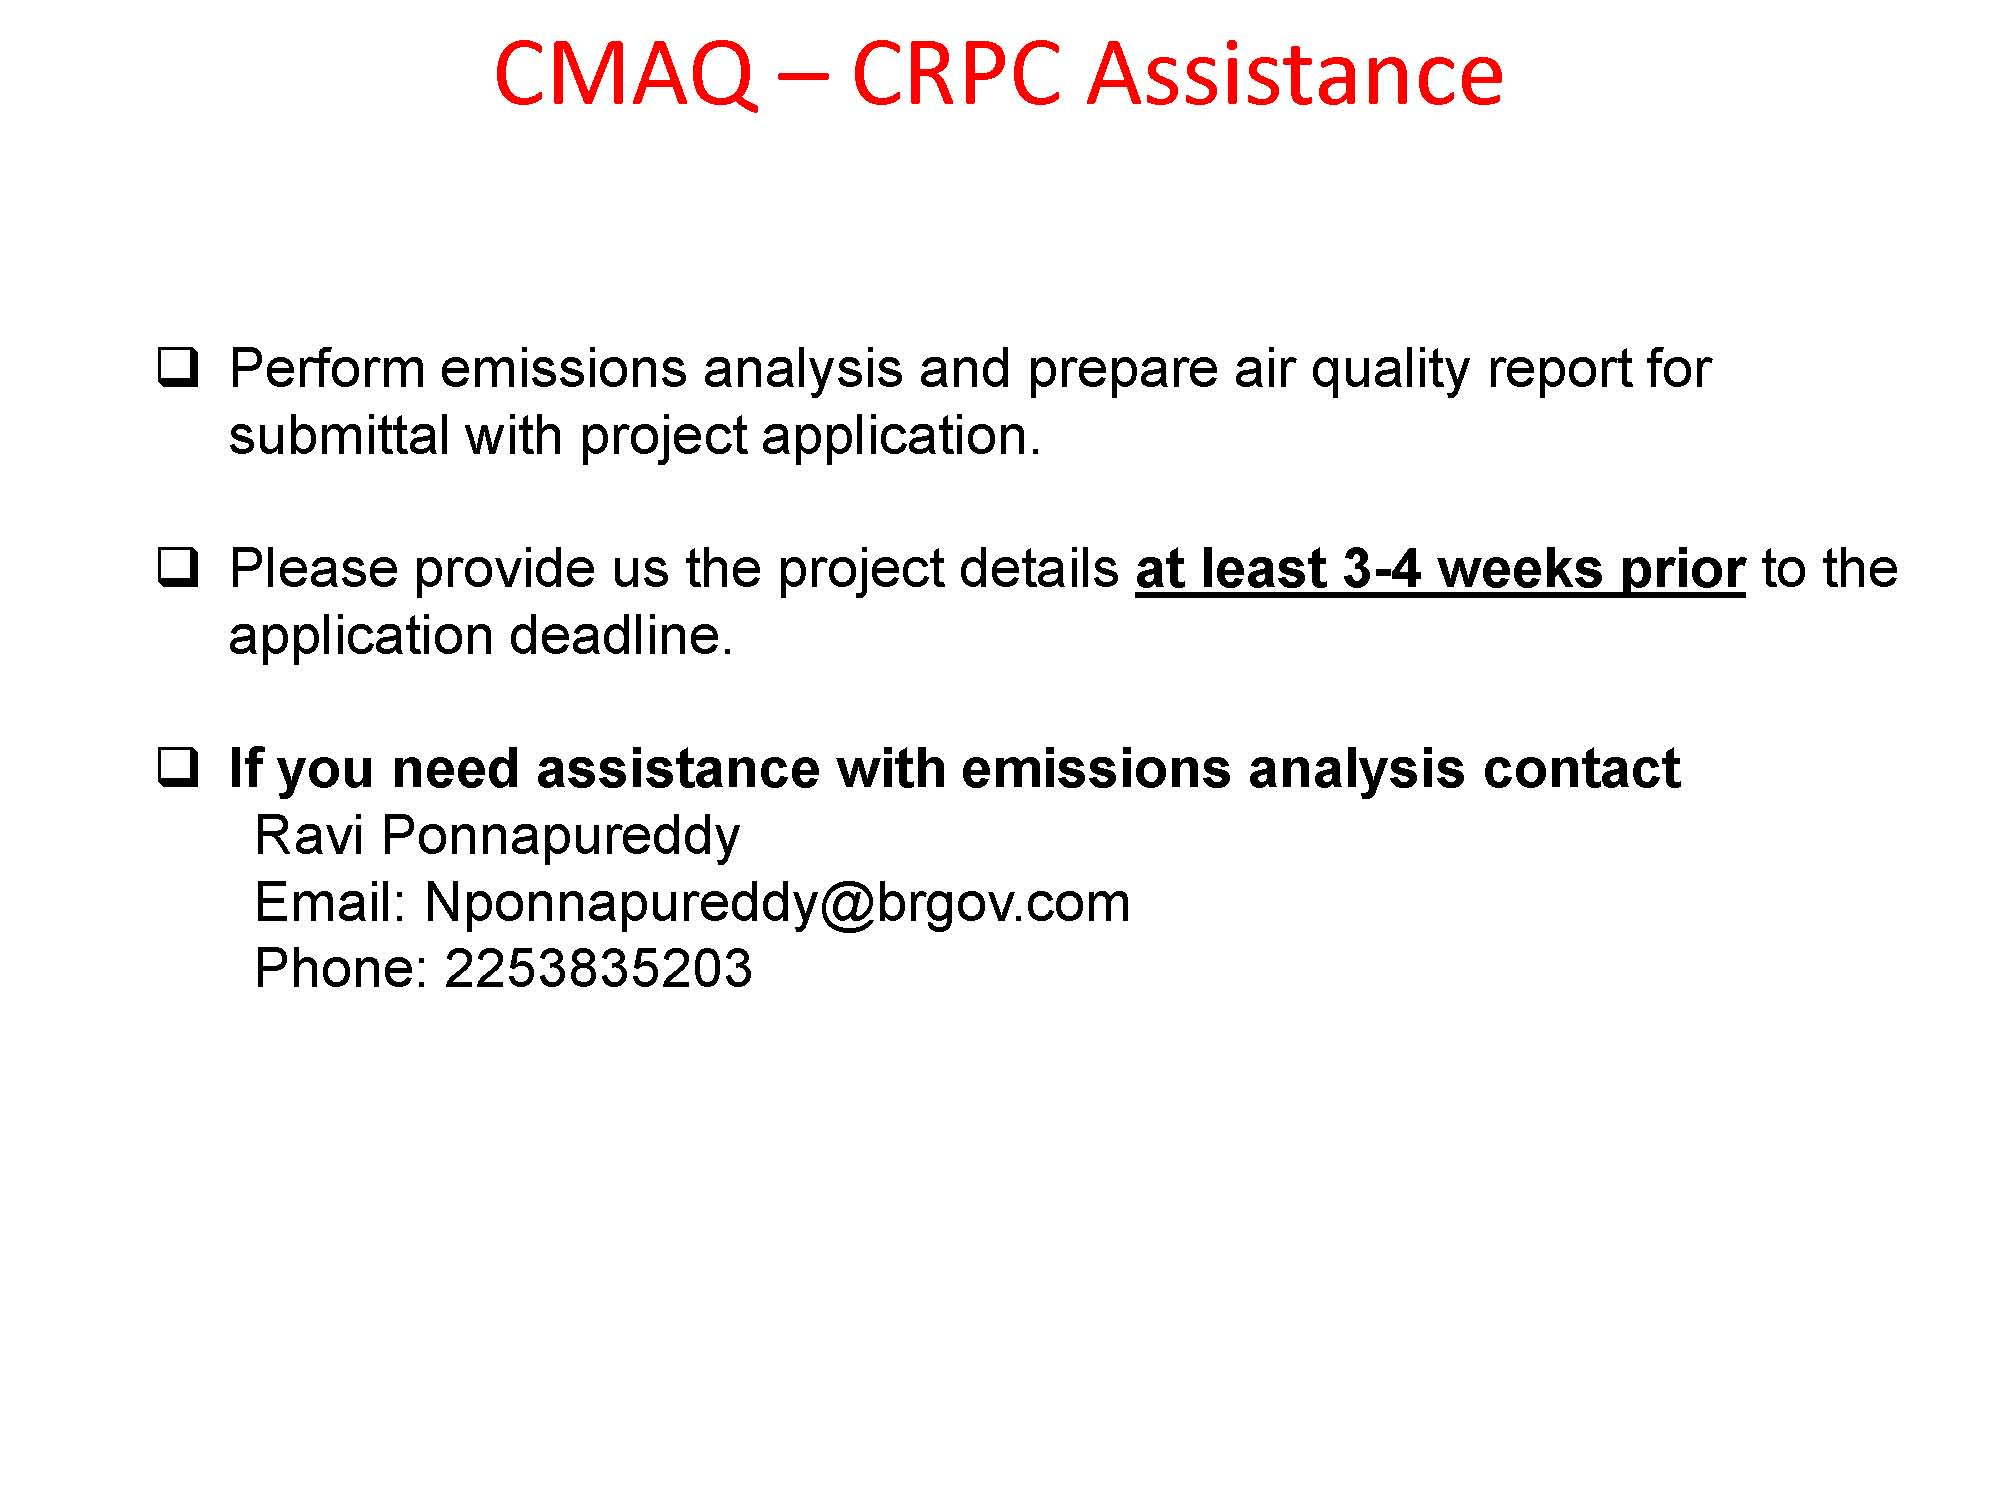 CRPC_Activity_Update_Page_19.jpg